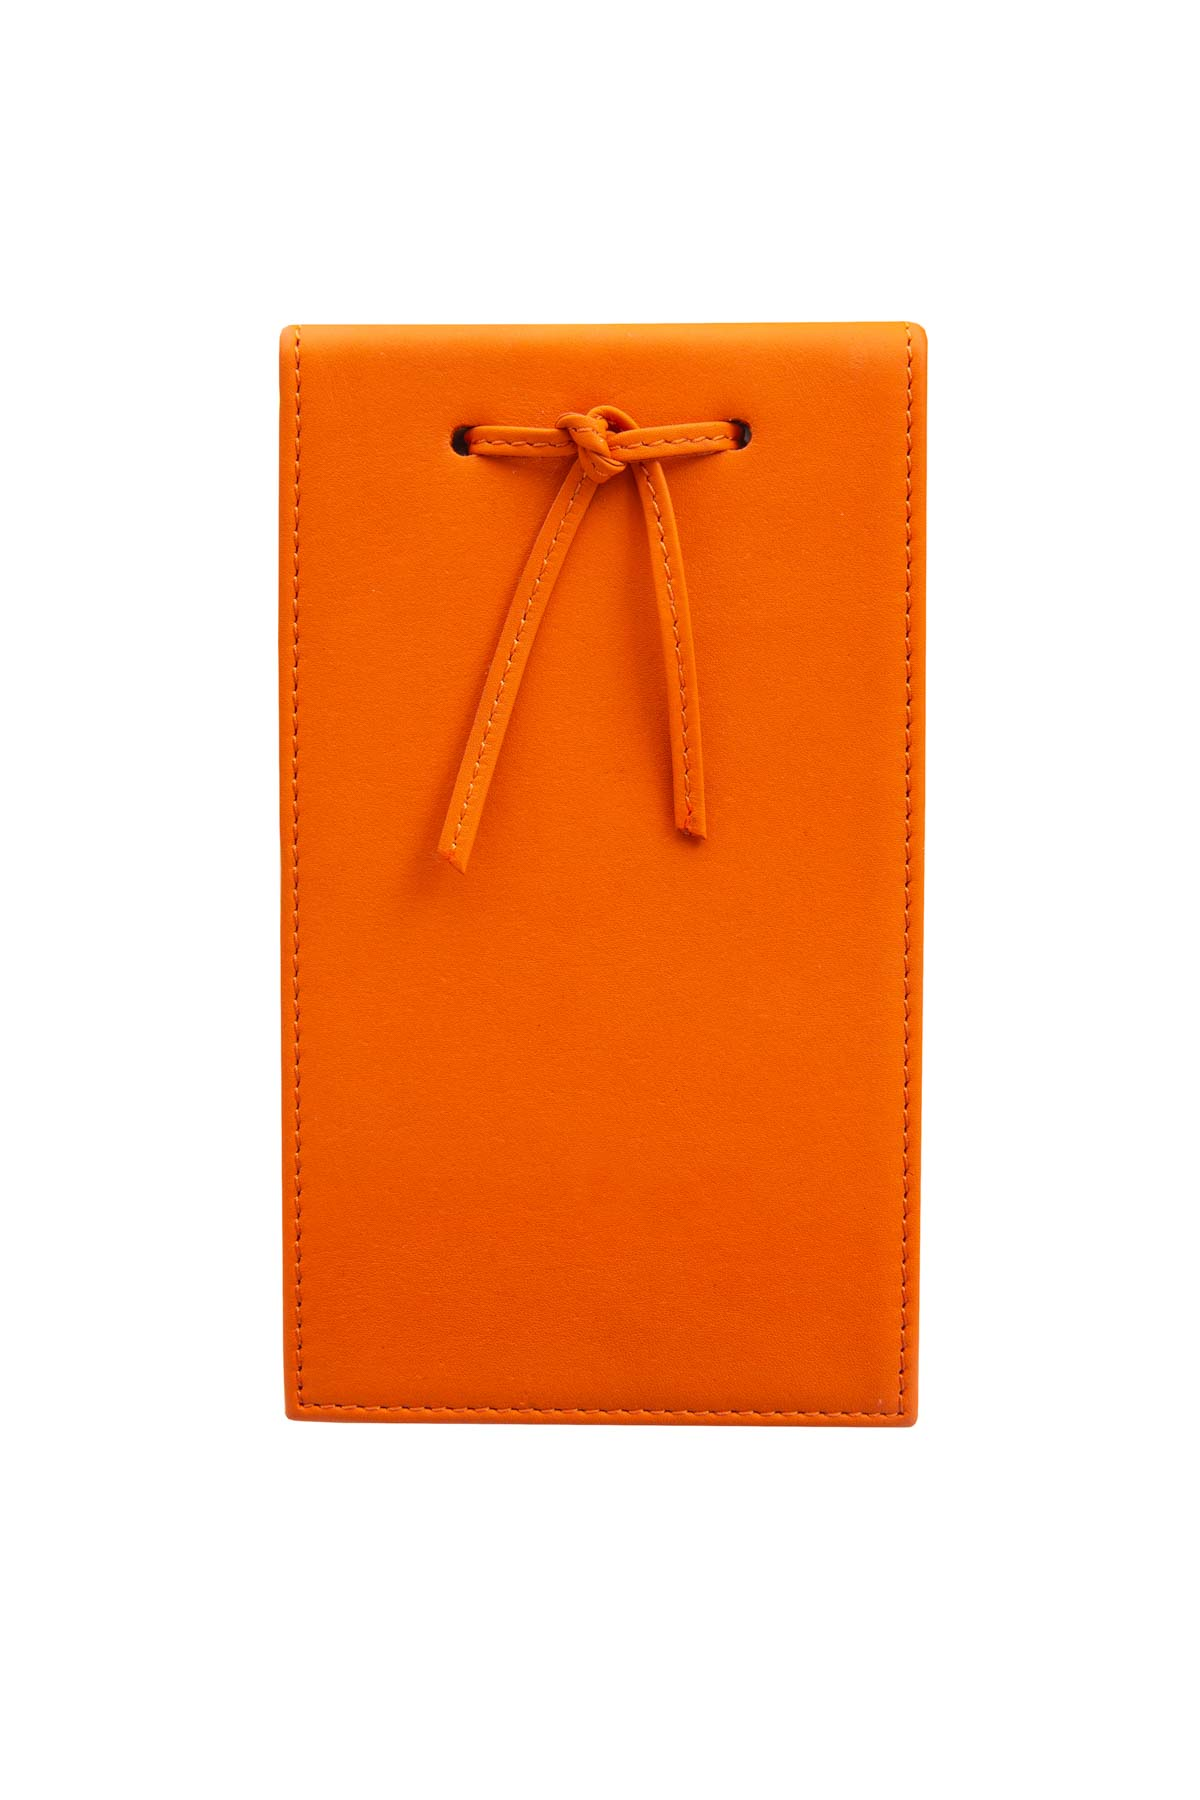 Telephone Pad - Orange